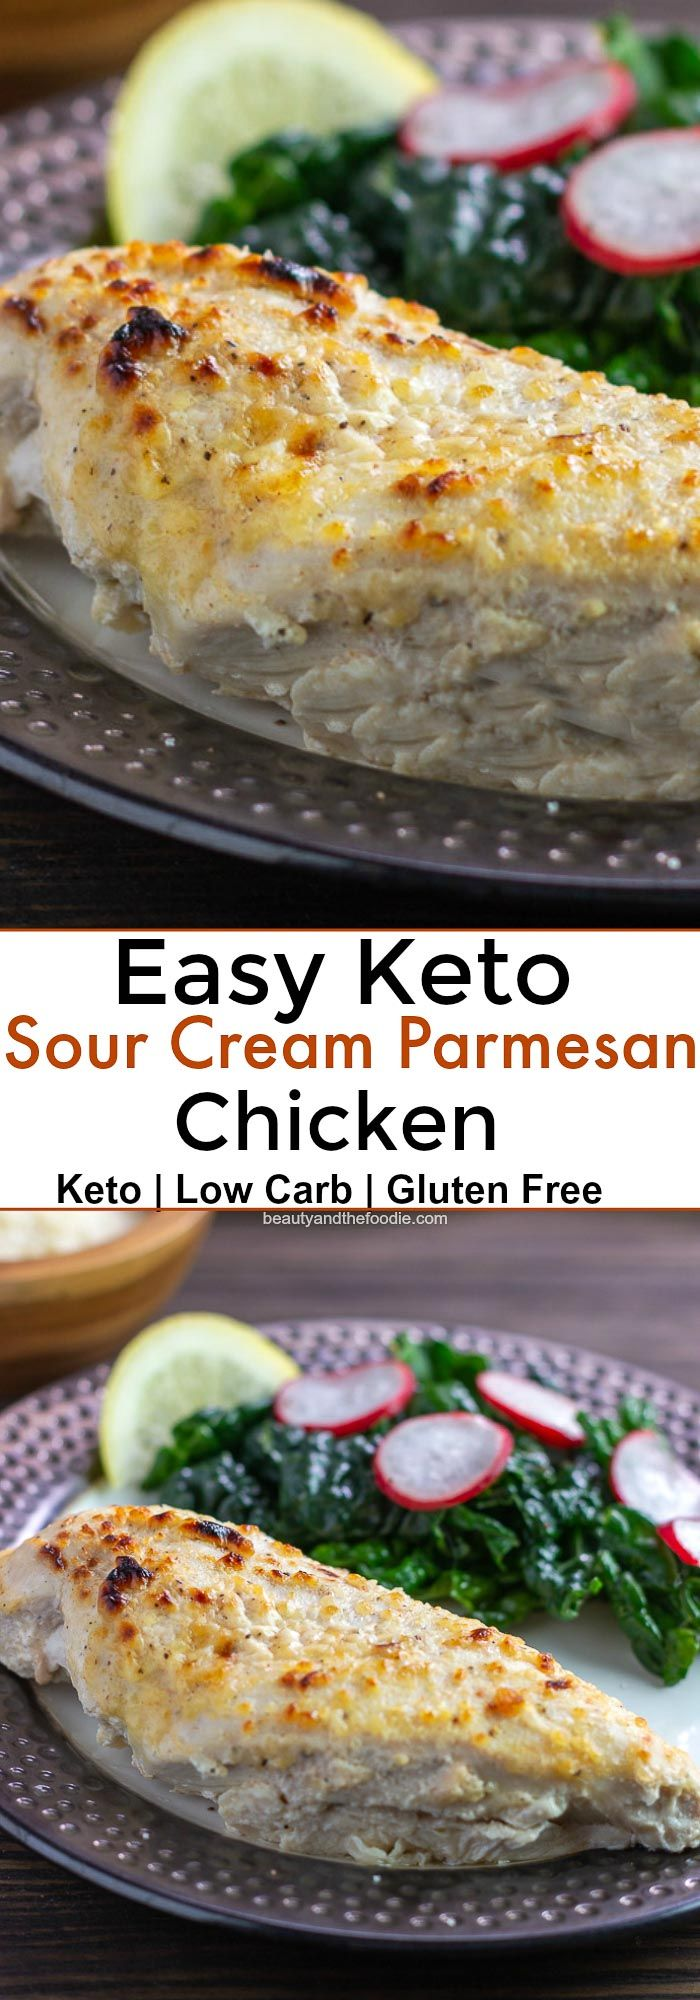 Keto Sour Cream Parmesan Chicken Beauty And The Foodie Chicken Parmesan Recipes Recipes Sour Cream Chicken